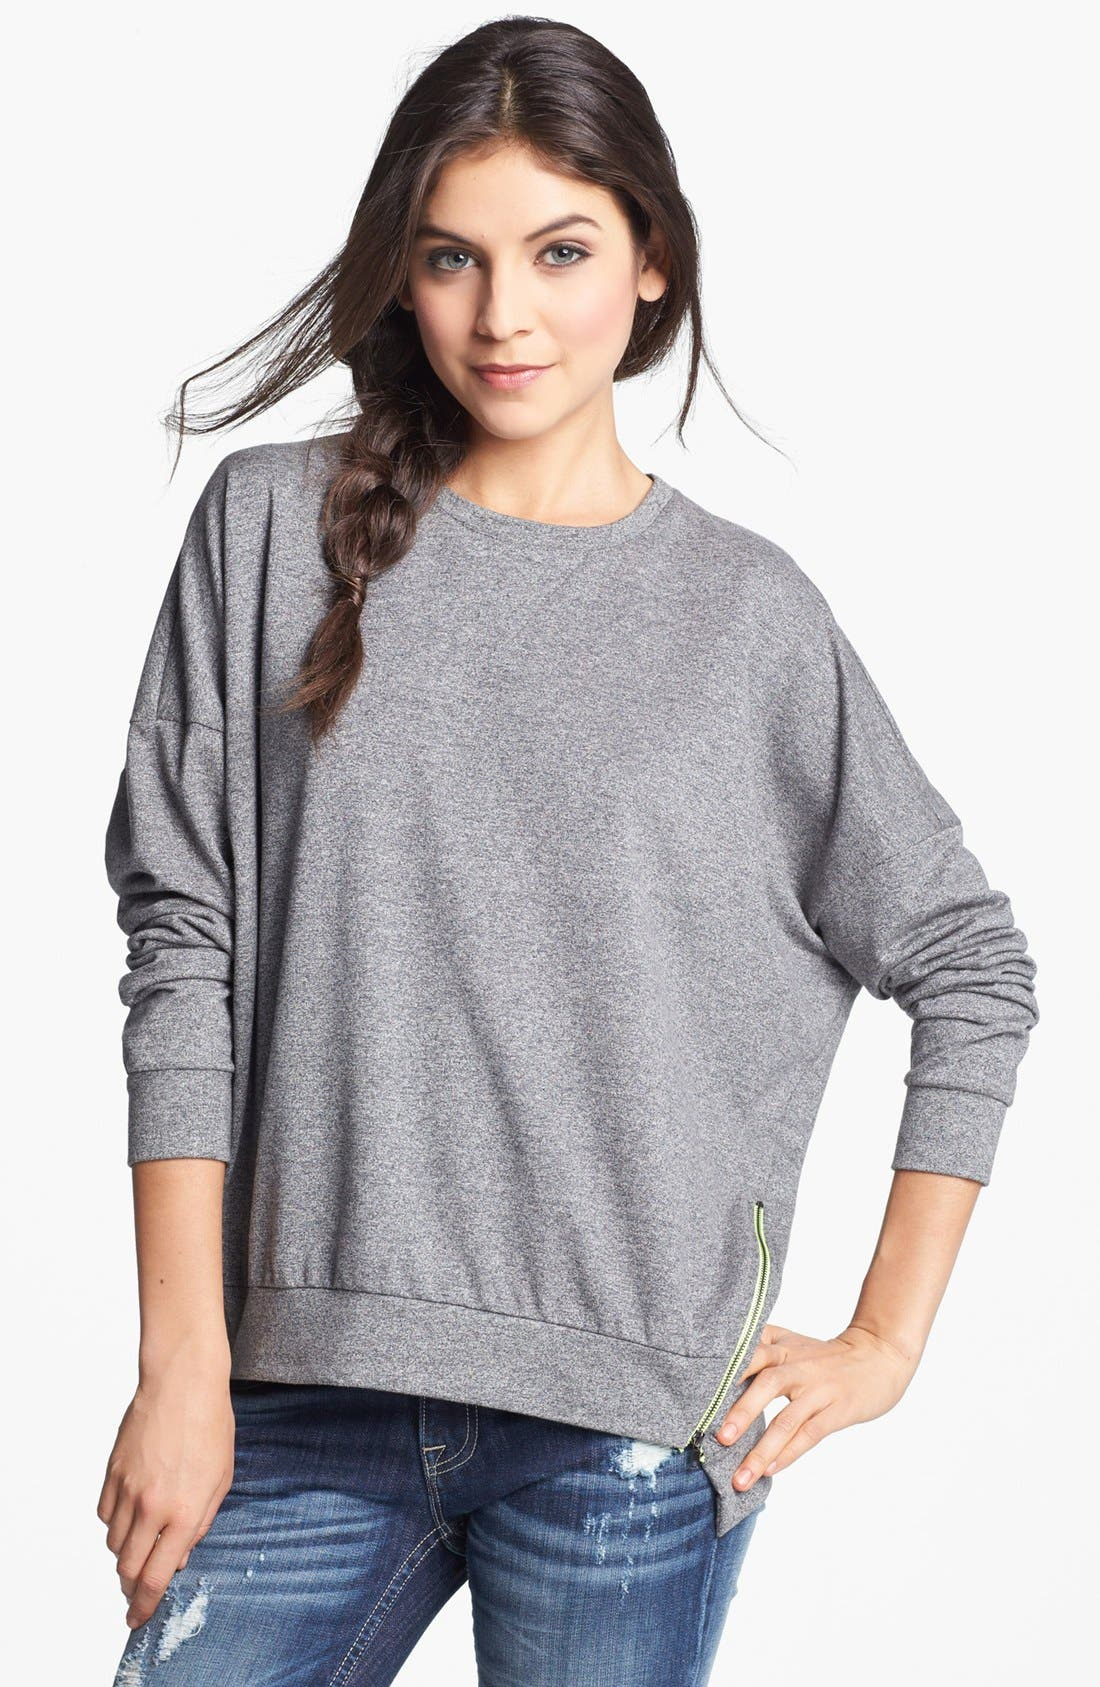 Alternate Image 1 Selected - Chloe K Side Zip Sweatshirt (Juniors)